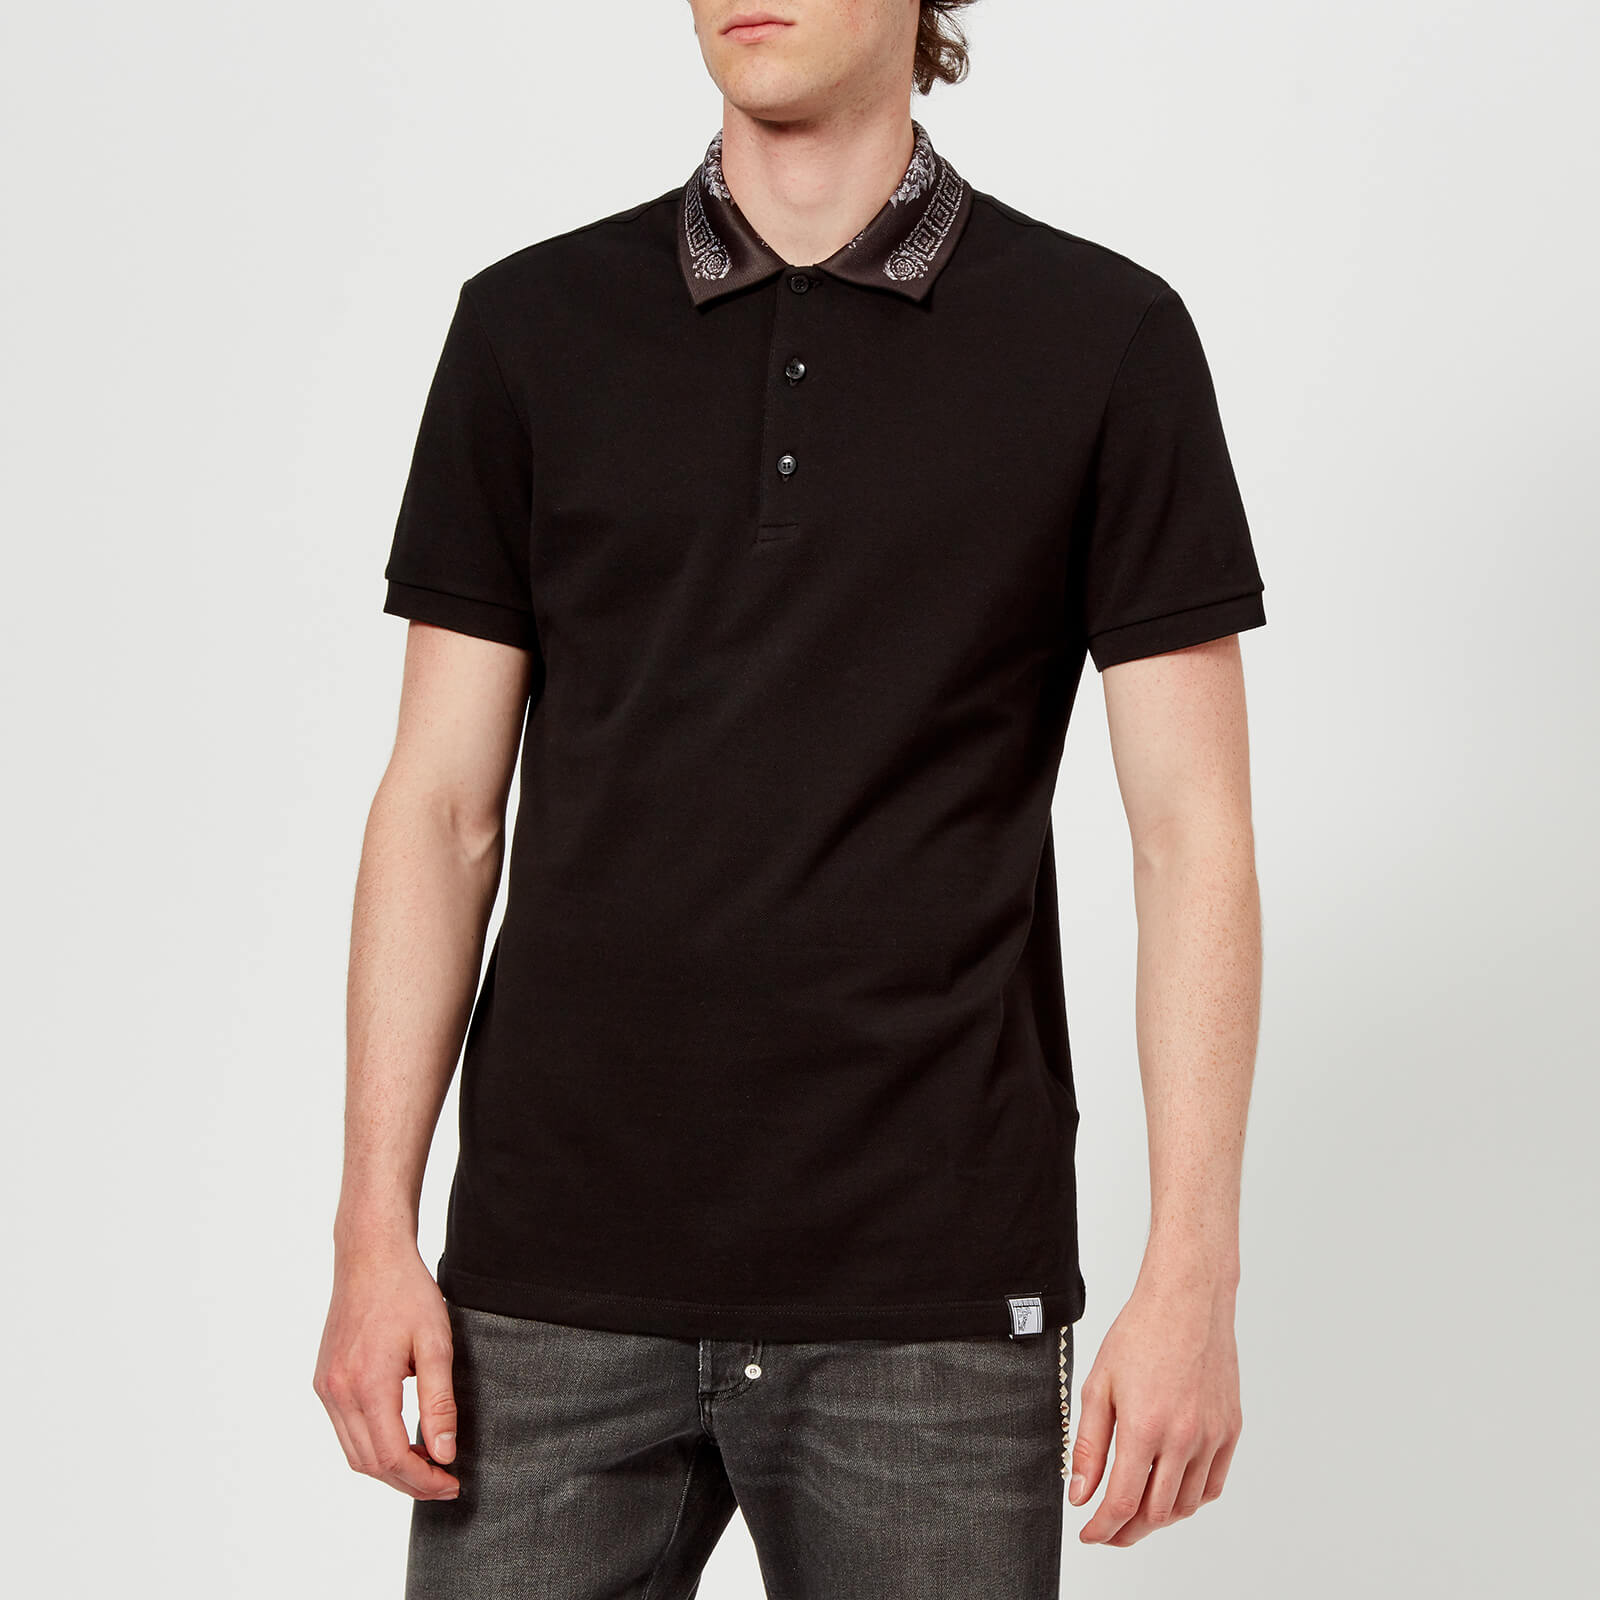 c6801383 Versace Collection Men's Collar Detail Polo Shirt - Nero - Free UK Delivery  over £50